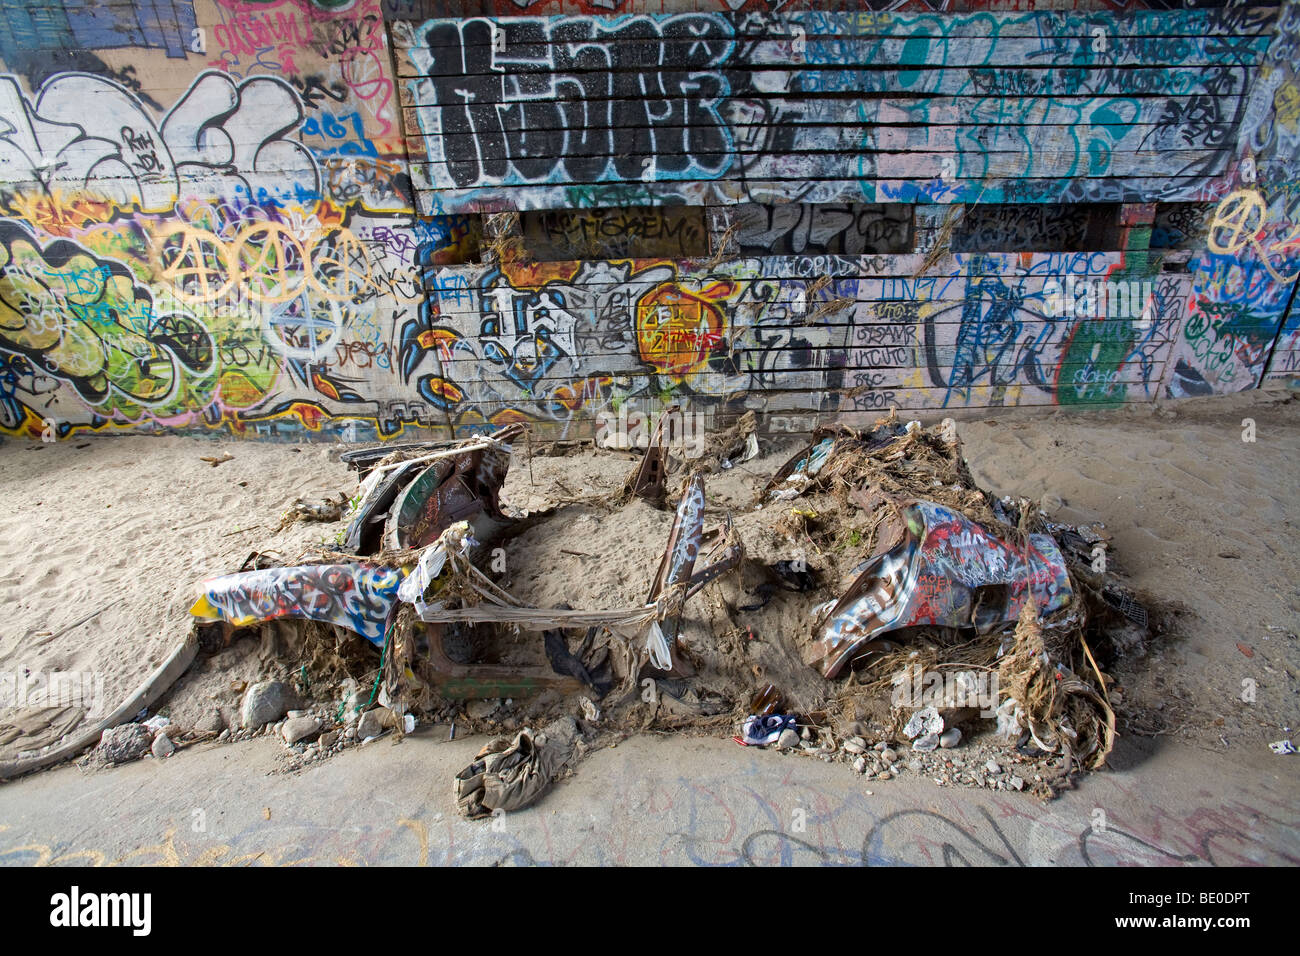 Abandoned car and graffiti underneath bridge in the Los Angeles River, California, USA. - Stock Image